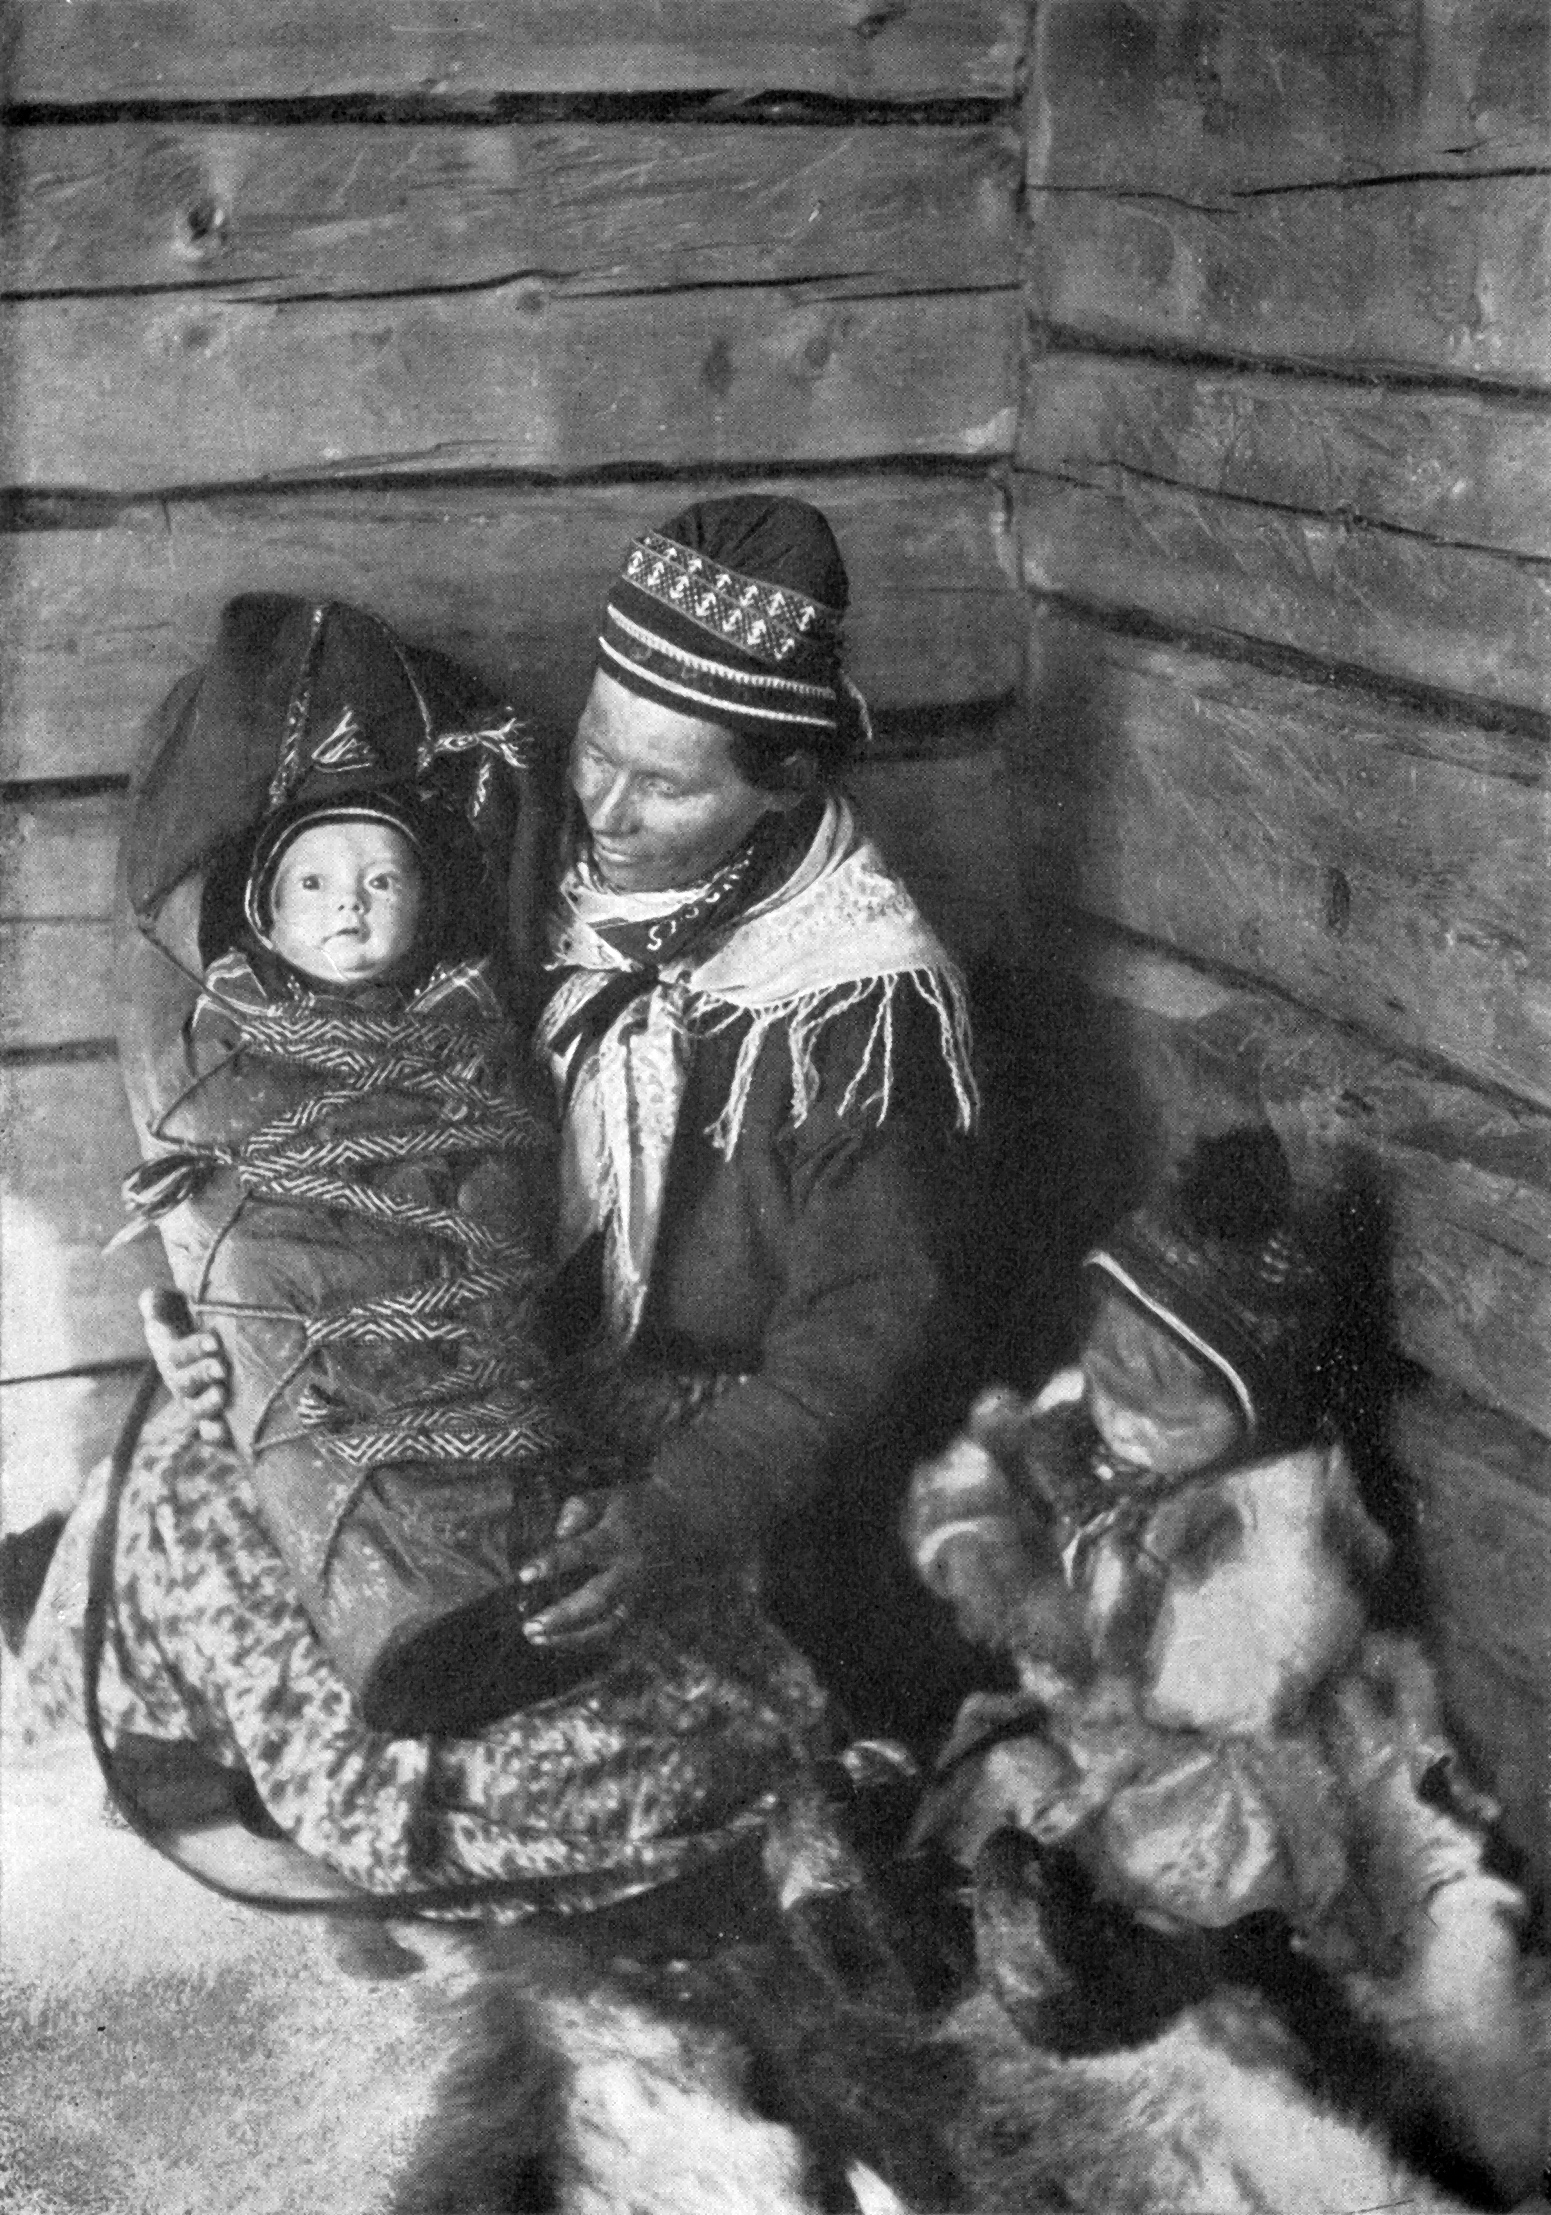 http://upload.wikimedia.org/wikipedia/commons/8/83/Lapland_Mother_NGM-v31-p556.jpg